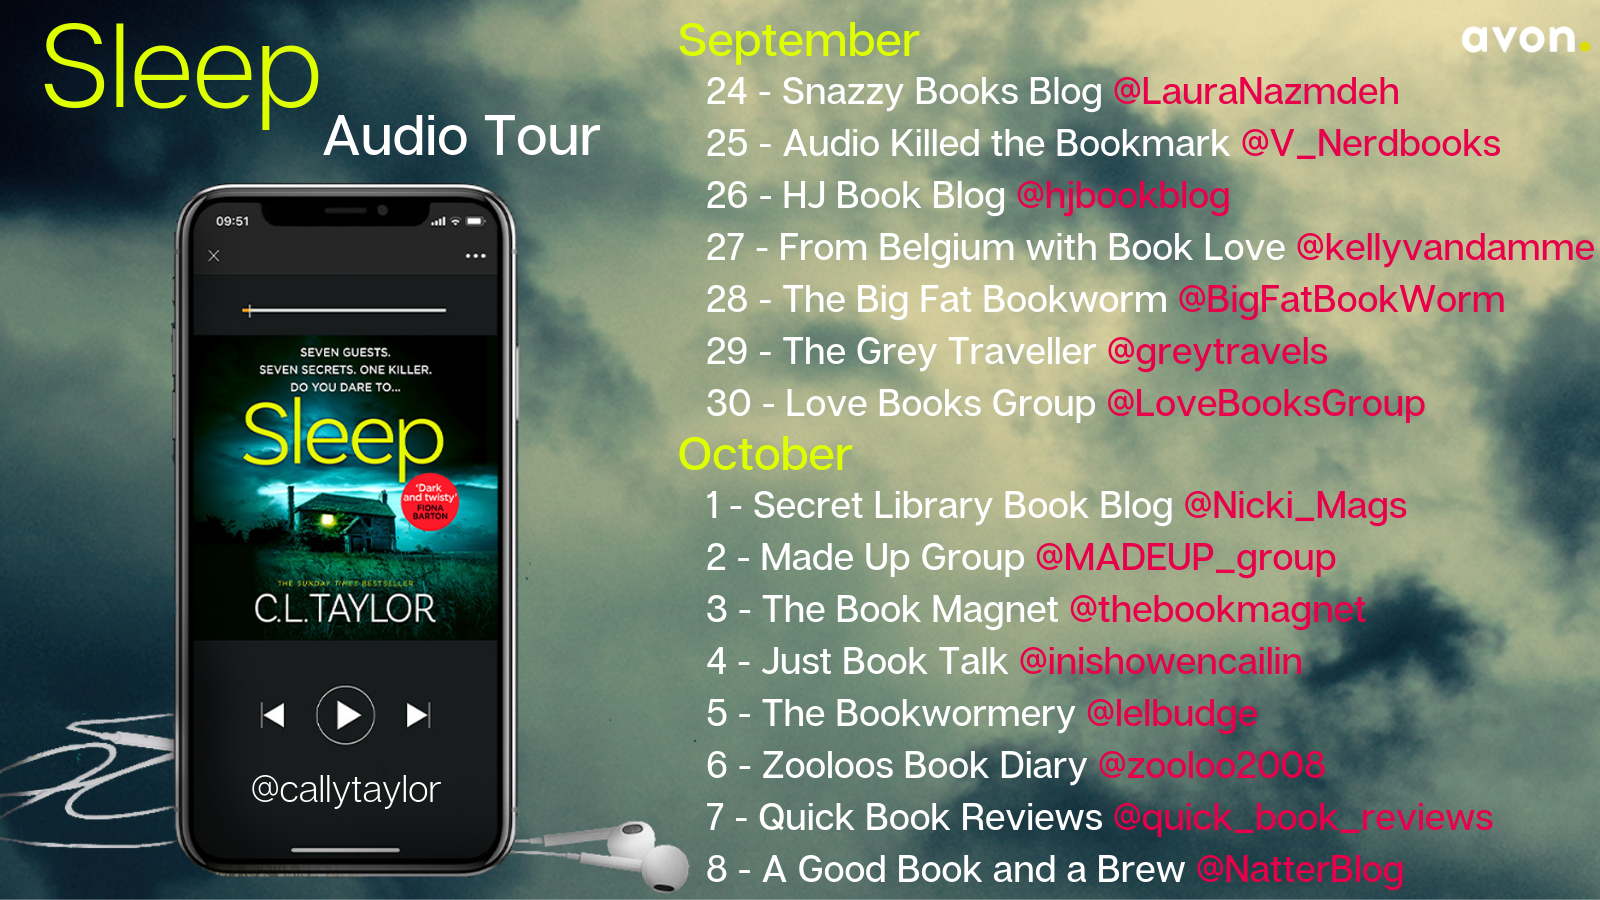 ***#AudiobookReview of Sleep by C.L Taylor @callytaylor @LitRedCorvette @avonbooksuk